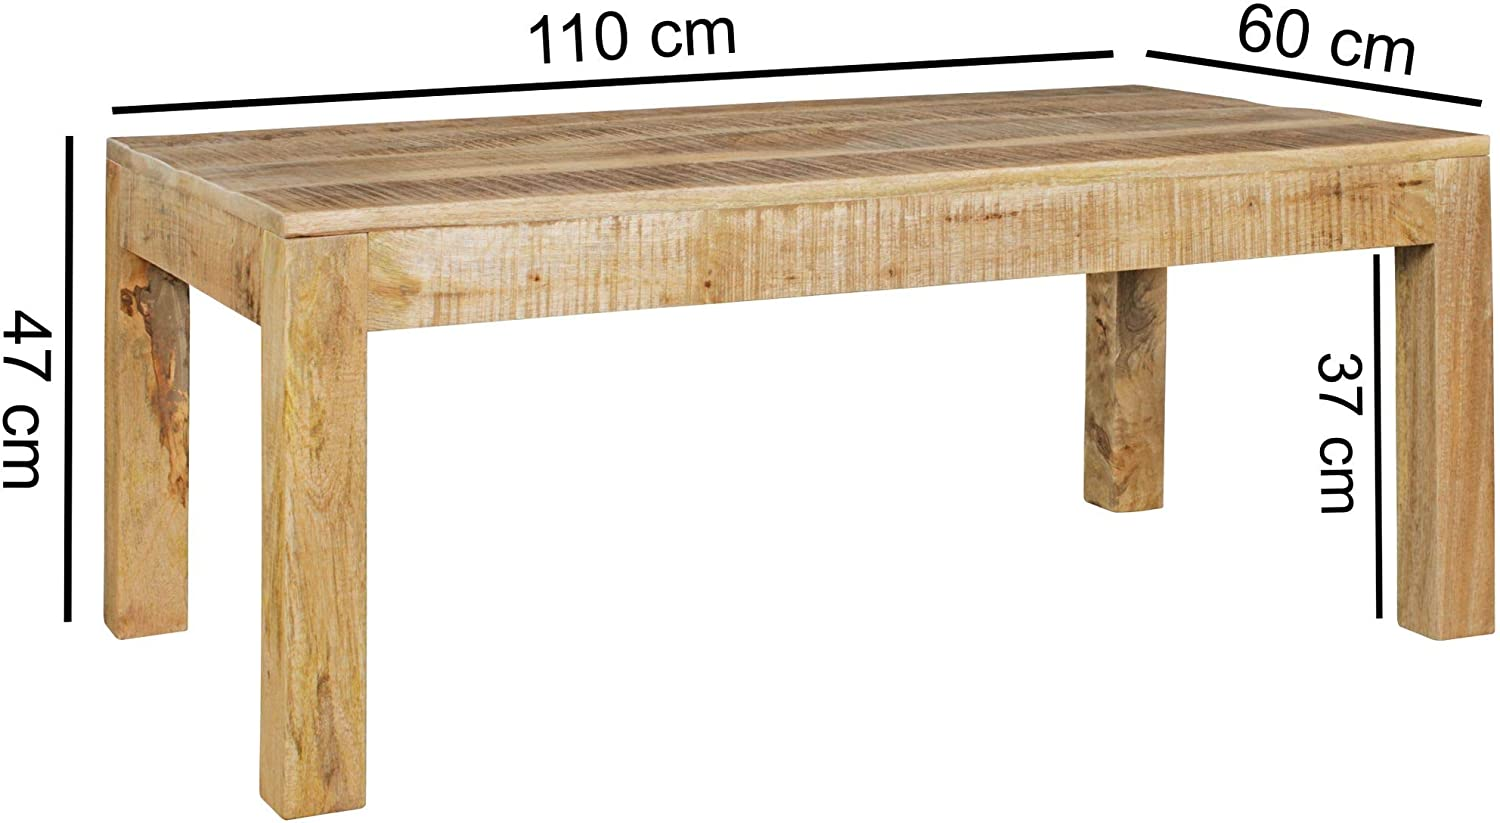 Kadimadesign Coffee Table Rustic 110 X 60 X 47 Cm Solid Wood Mango Nature Country Style Living Room Table Rustic Coffee Table Solid Wood Table Living Room Nature Amazon Co Uk Kitchen Home